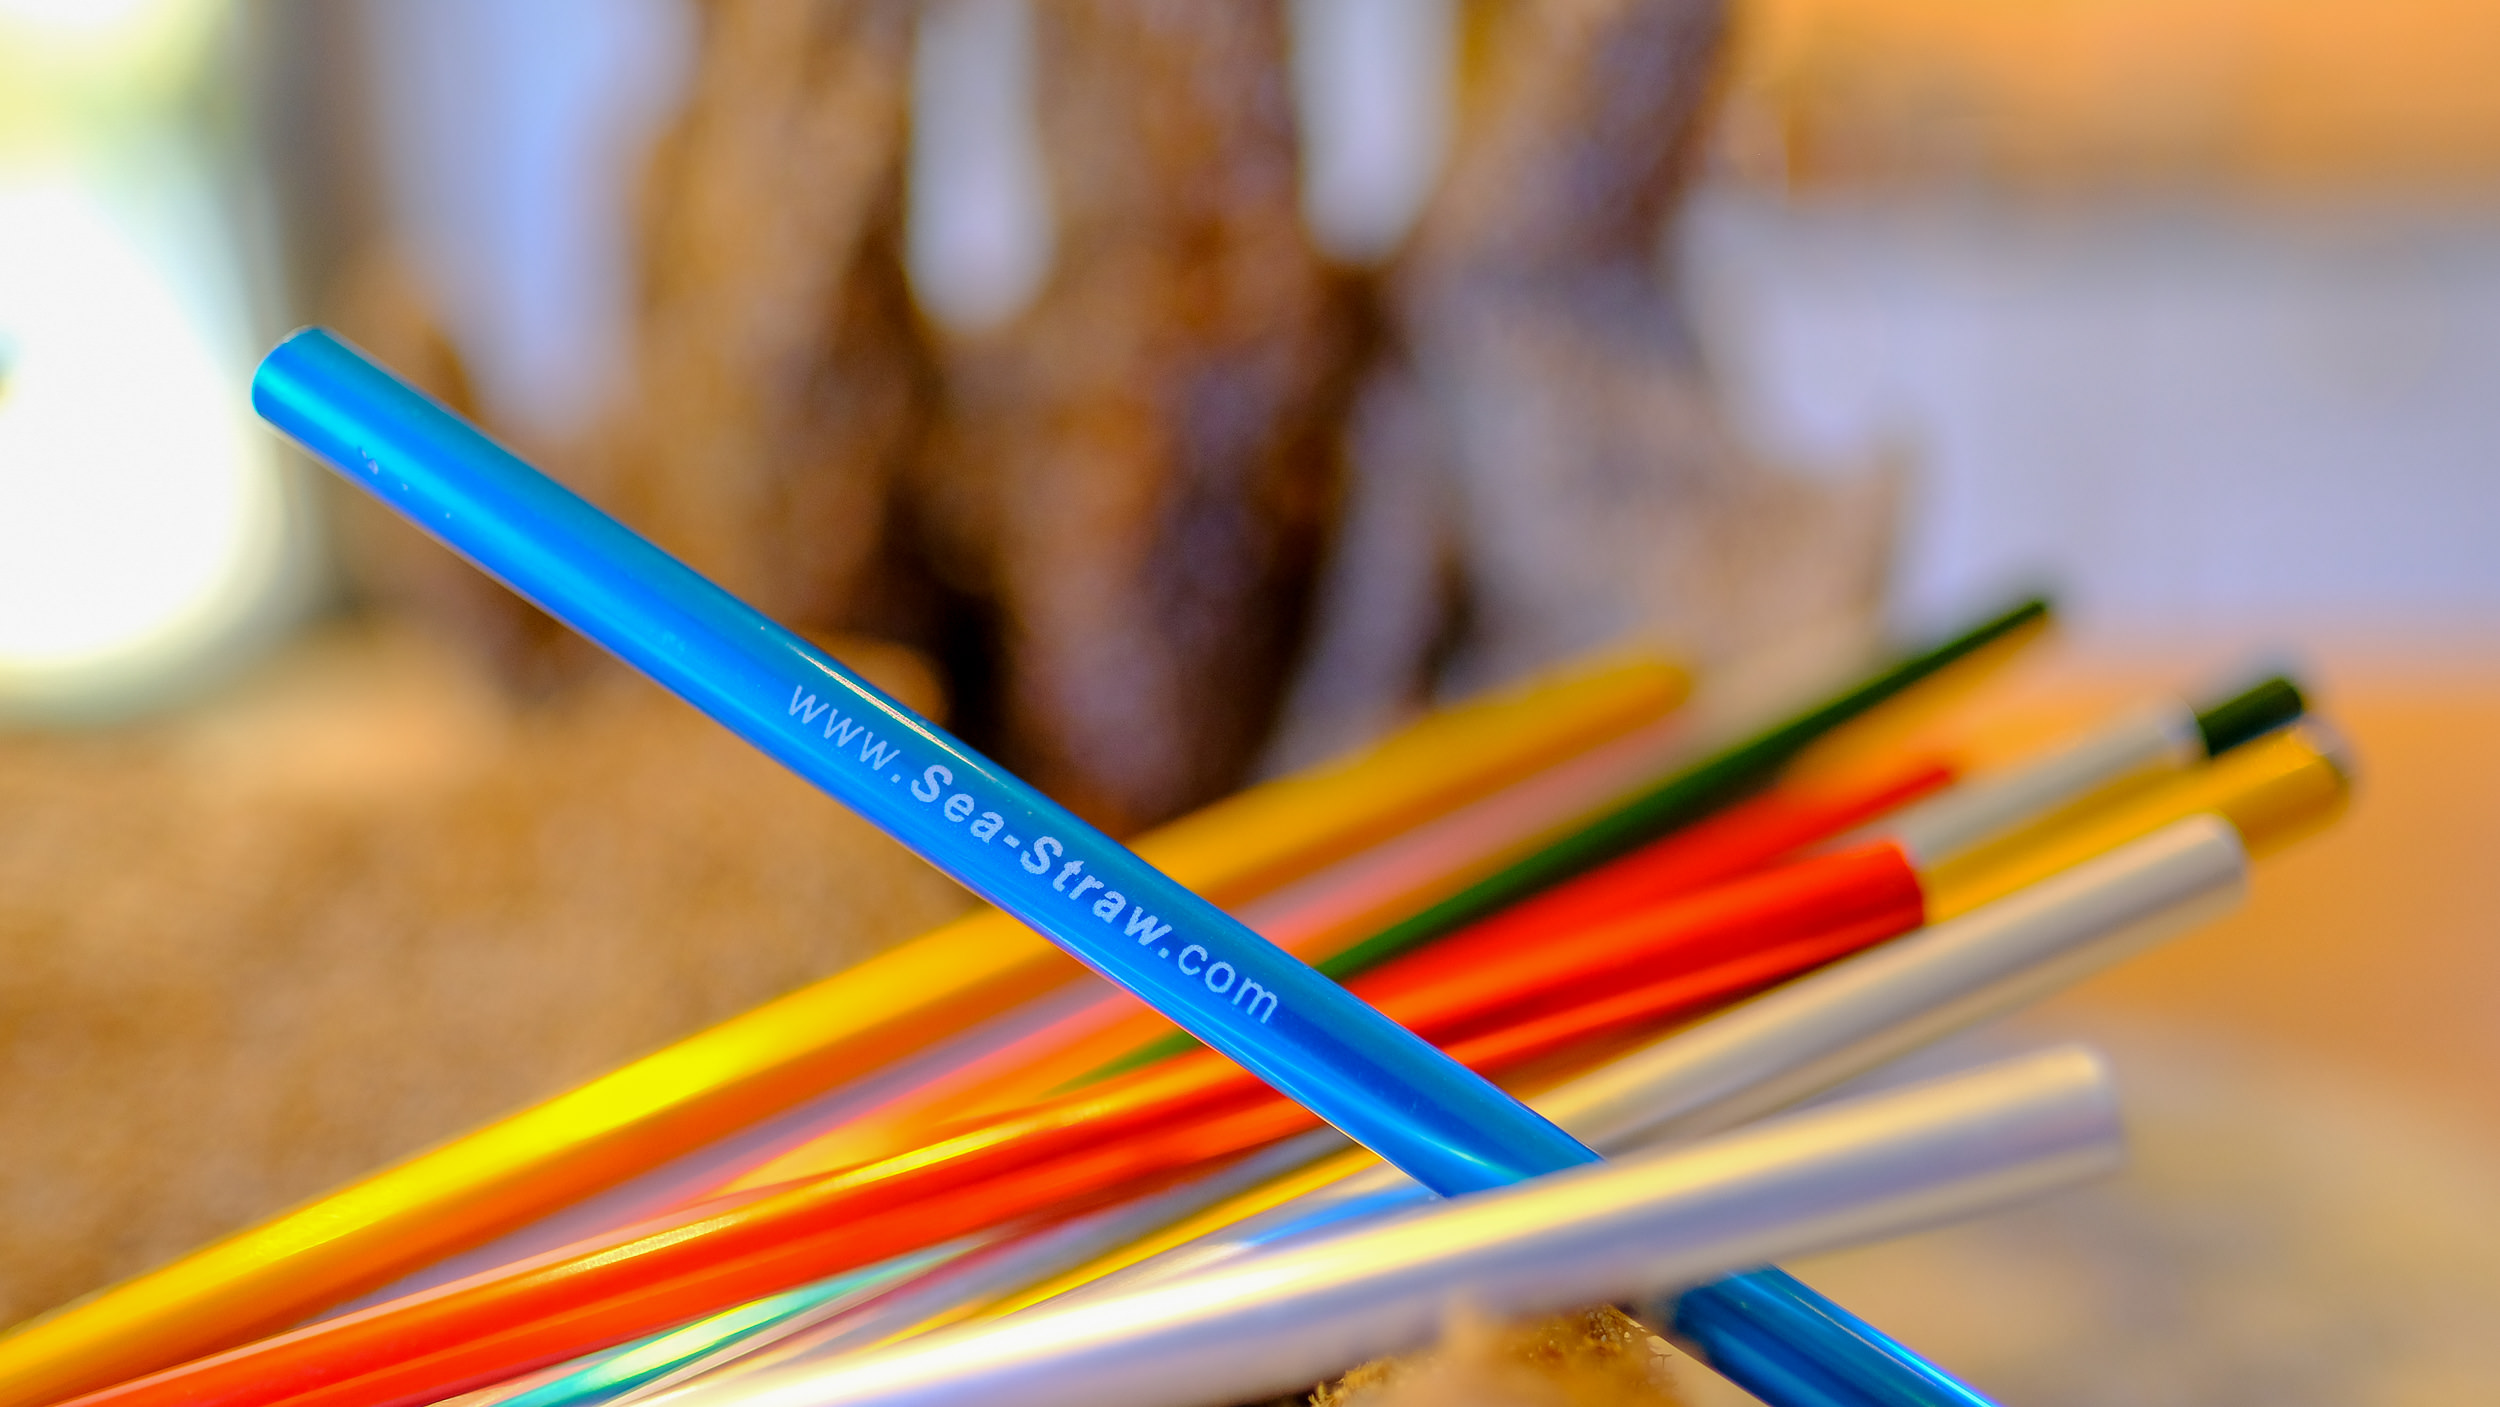 Sea-Straw.com aluminum eco-friendly straws (10 of 26).jpg